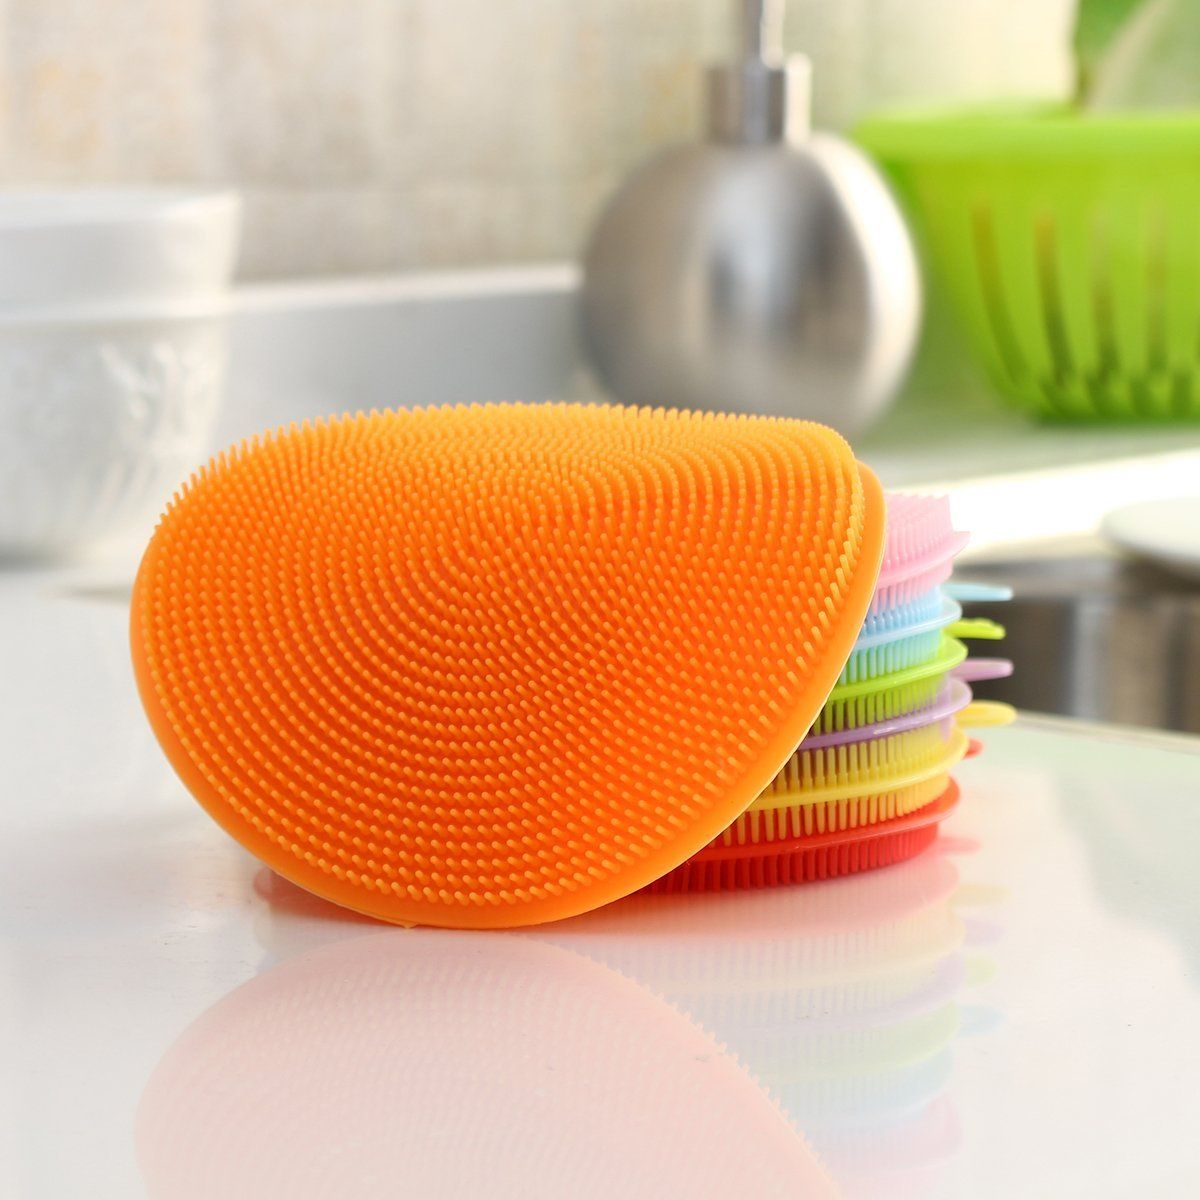 Multipurpose Anti-Bacterial Sponge #inspireuplift explore Pinterest